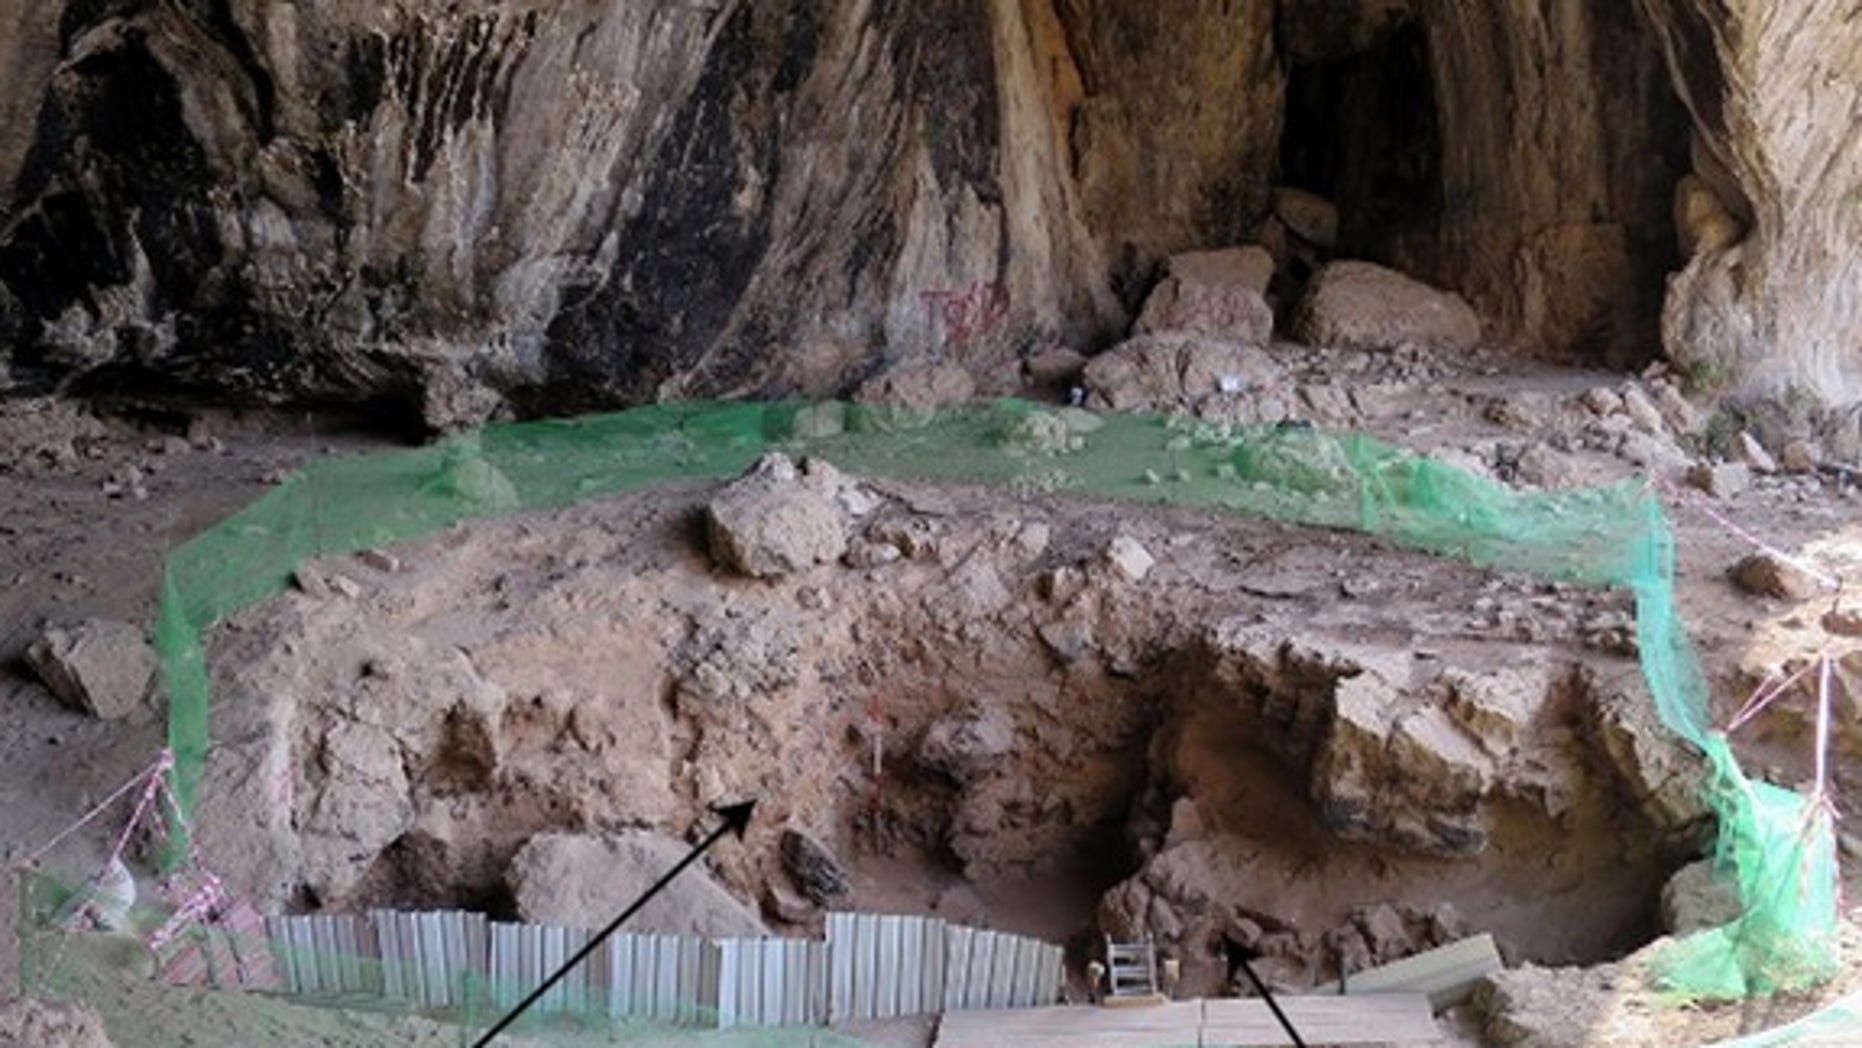 Neanderthal remains were found, along with a plinth of sediment, in Shanidar Cave in Iraq.